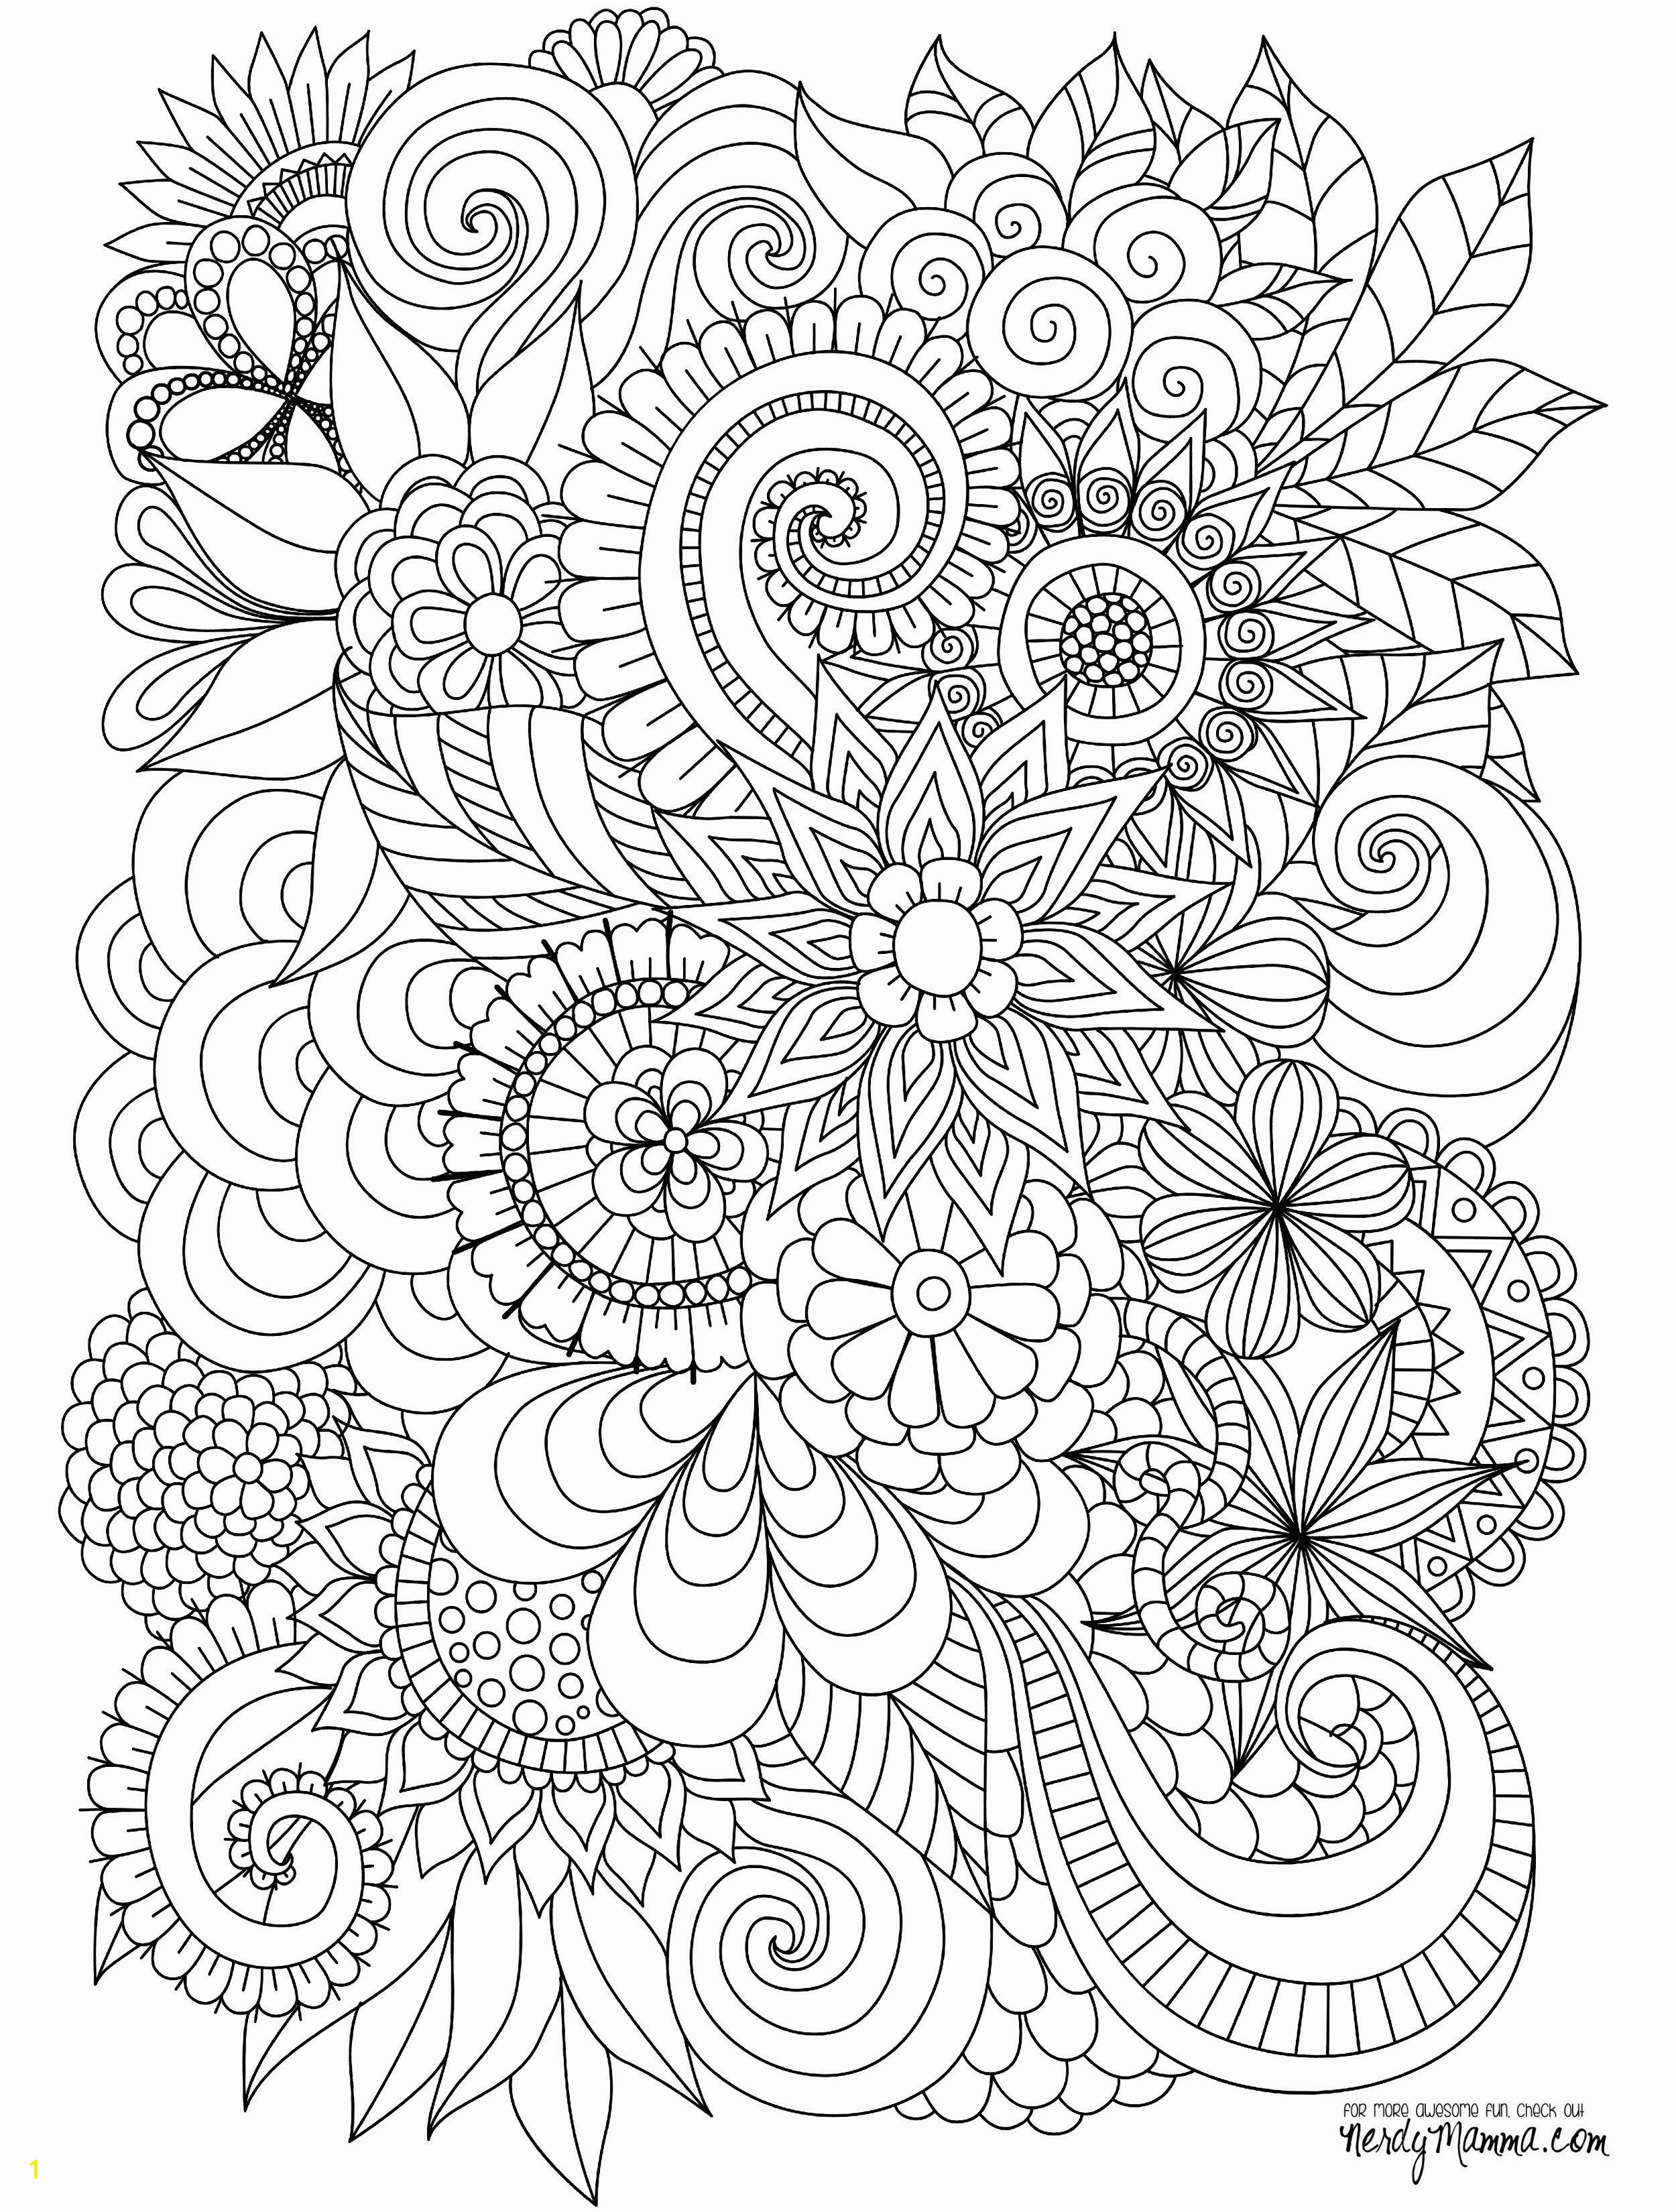 Printable Stress Relieving Coloring Pages Flowers Abstract Coloring Pages Colouring Adult Detailed Advanced